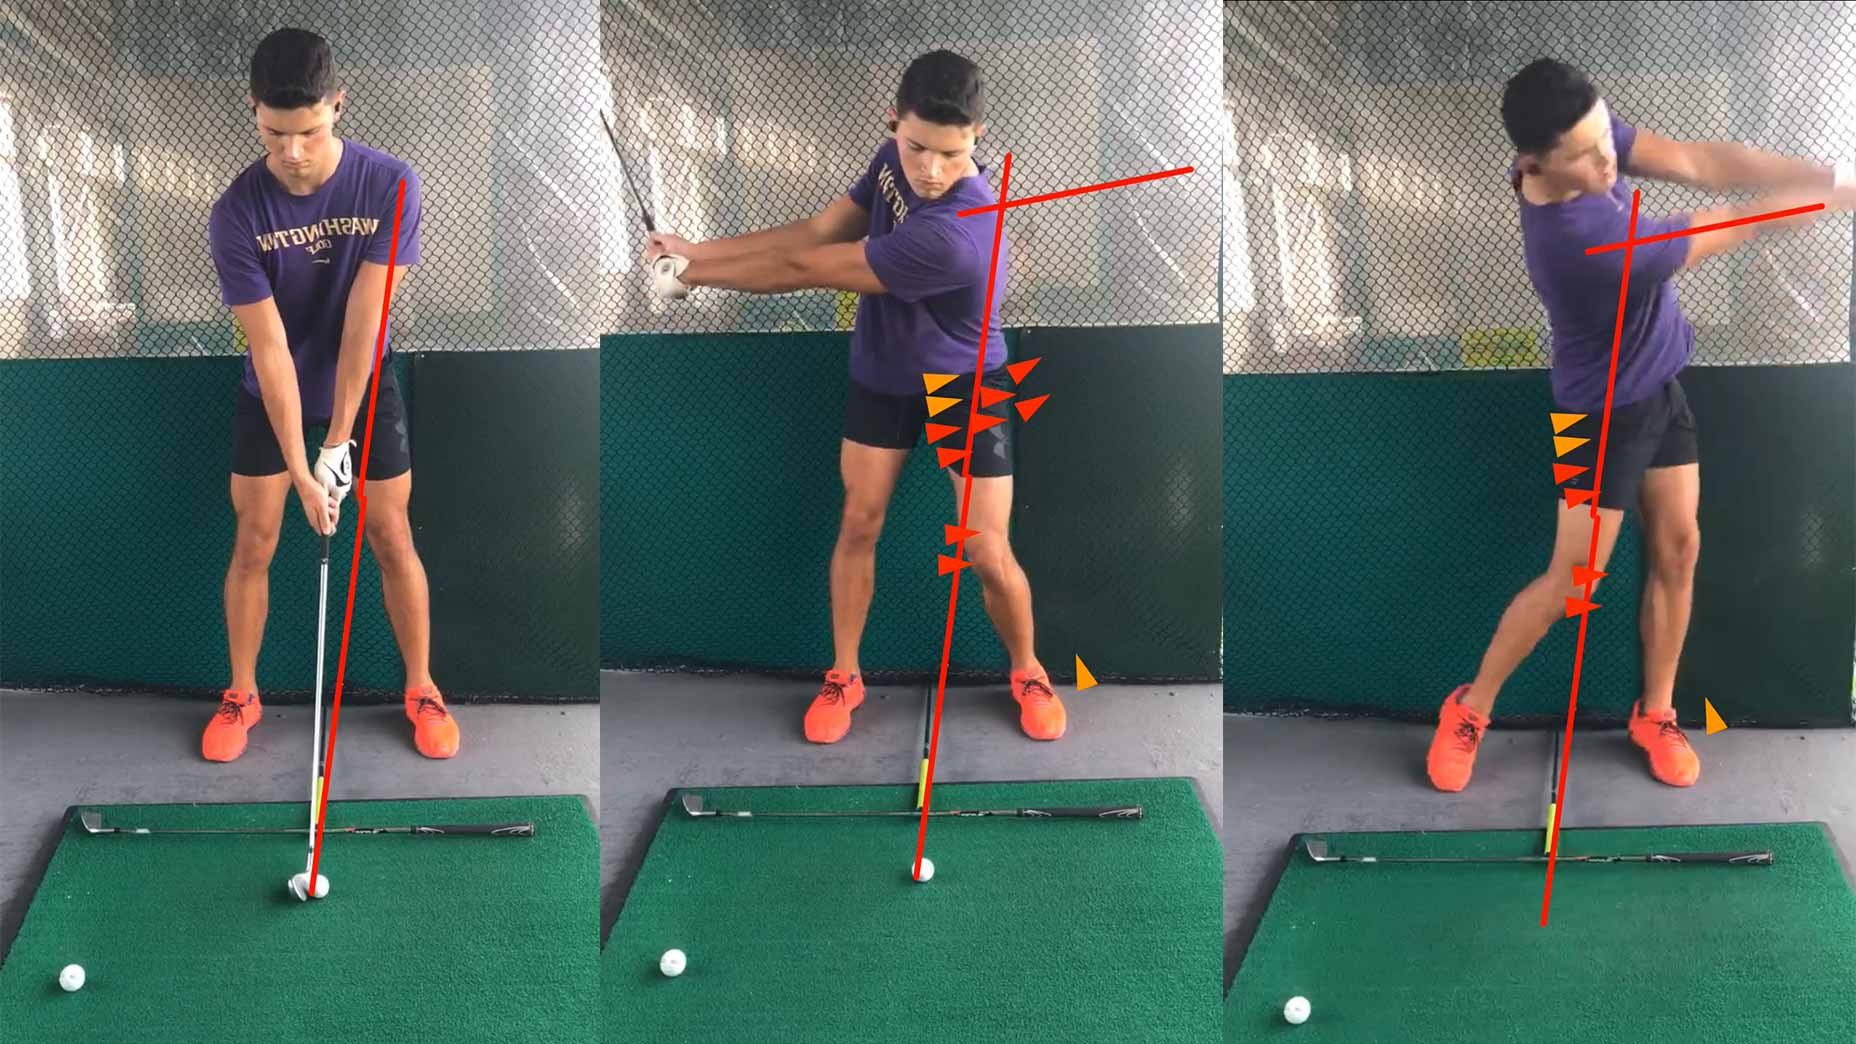 Virtual coaching changed my golf game for the better with 1 simple drill: 30-Day Challenge